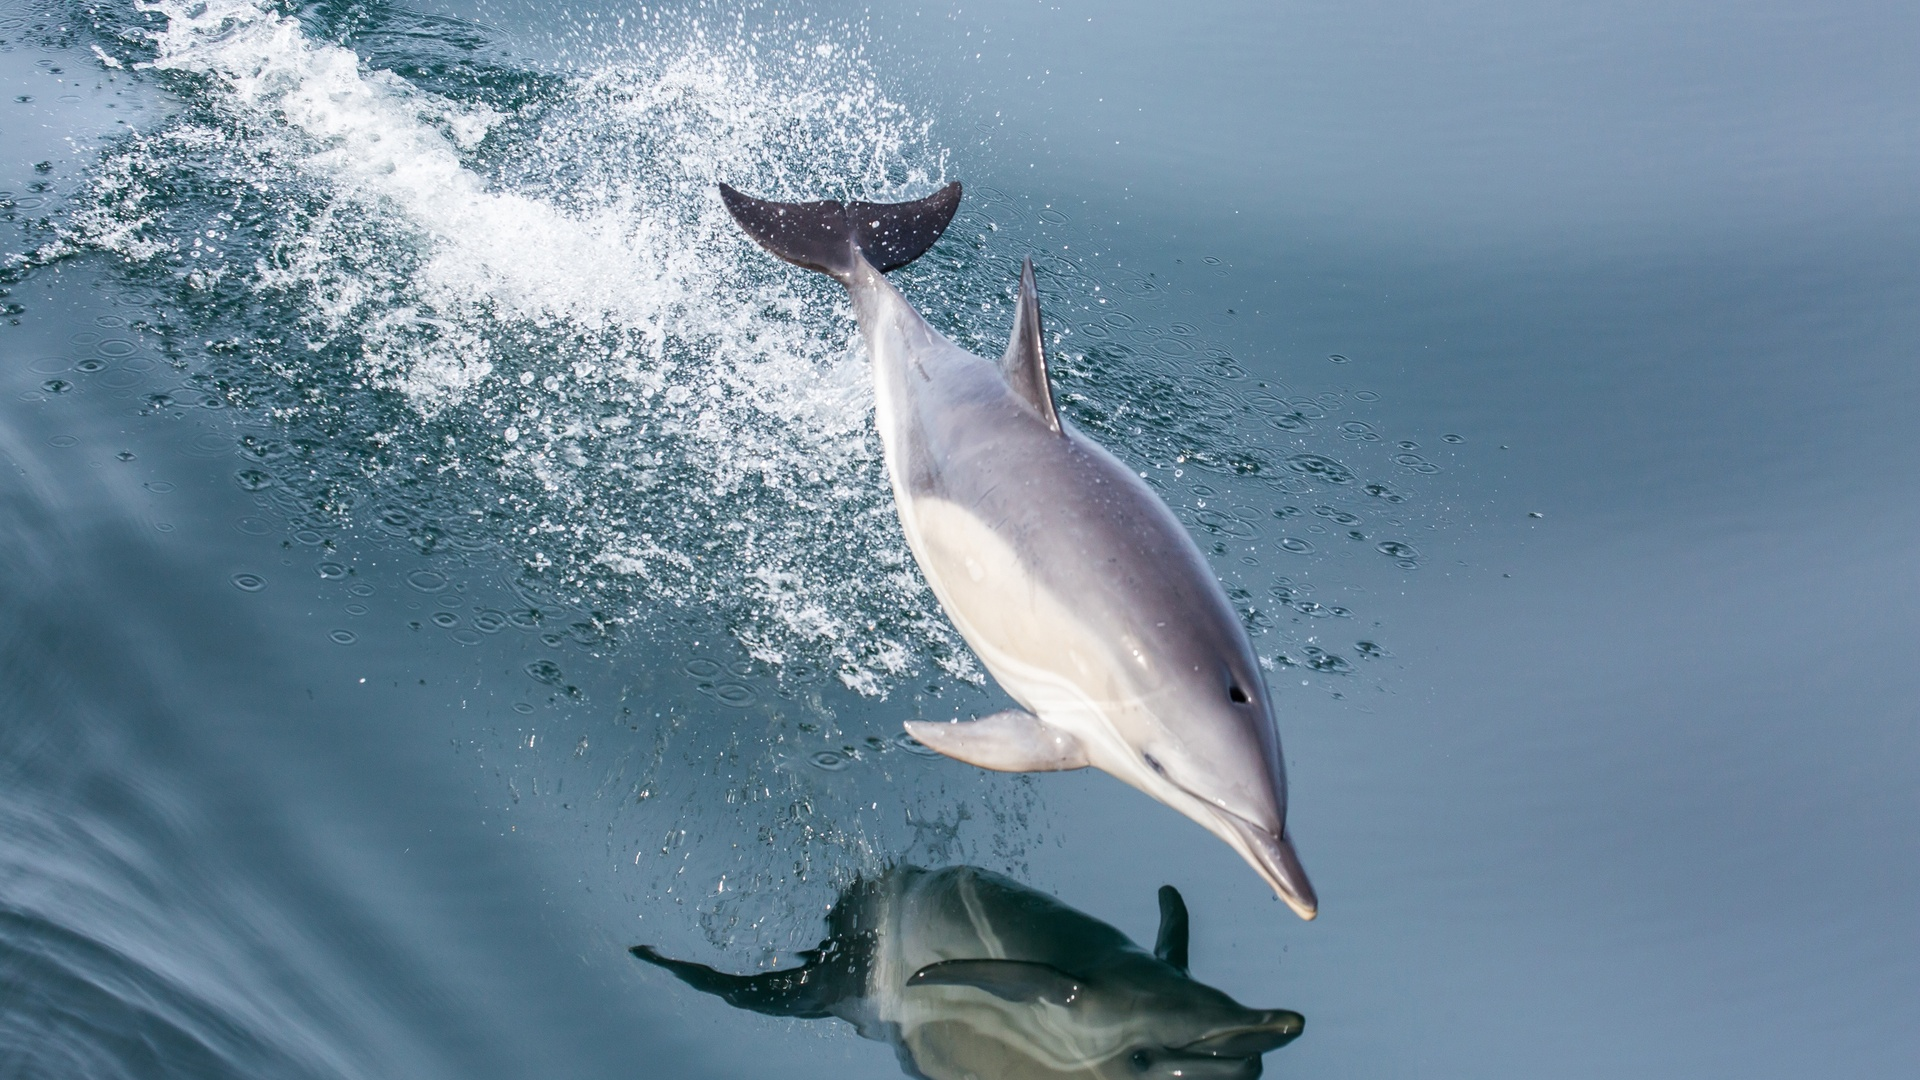 1920x1080 Dolphin Laptop Full Hd 1080p Hd 4k Wallpapers Images